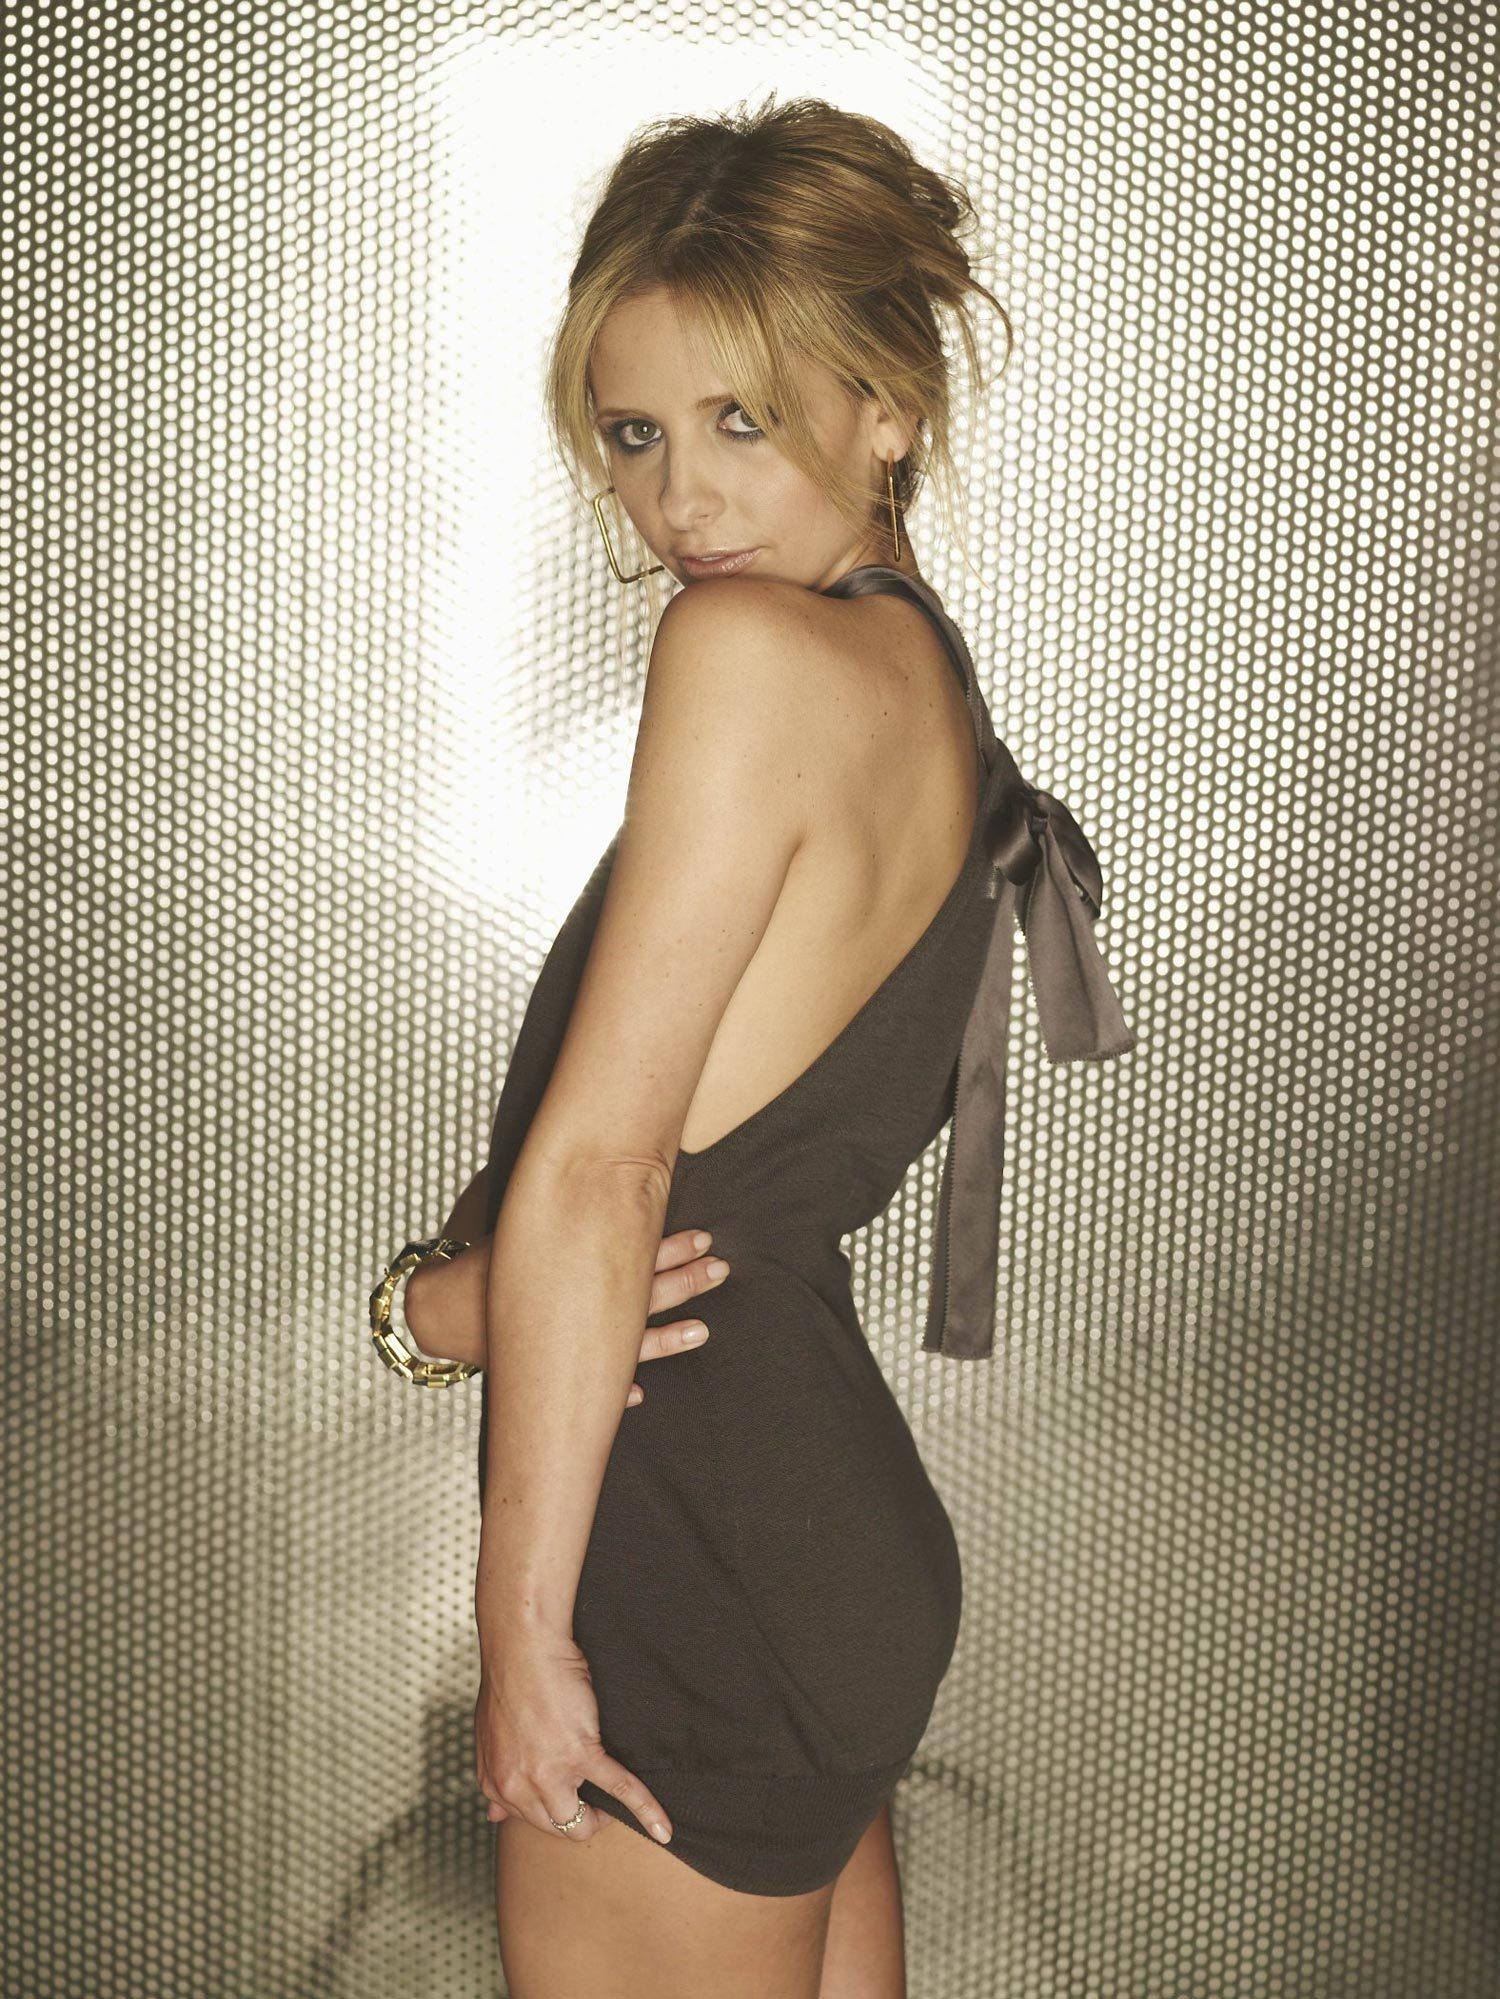 Hot NEW SMG foto's 2008!!!